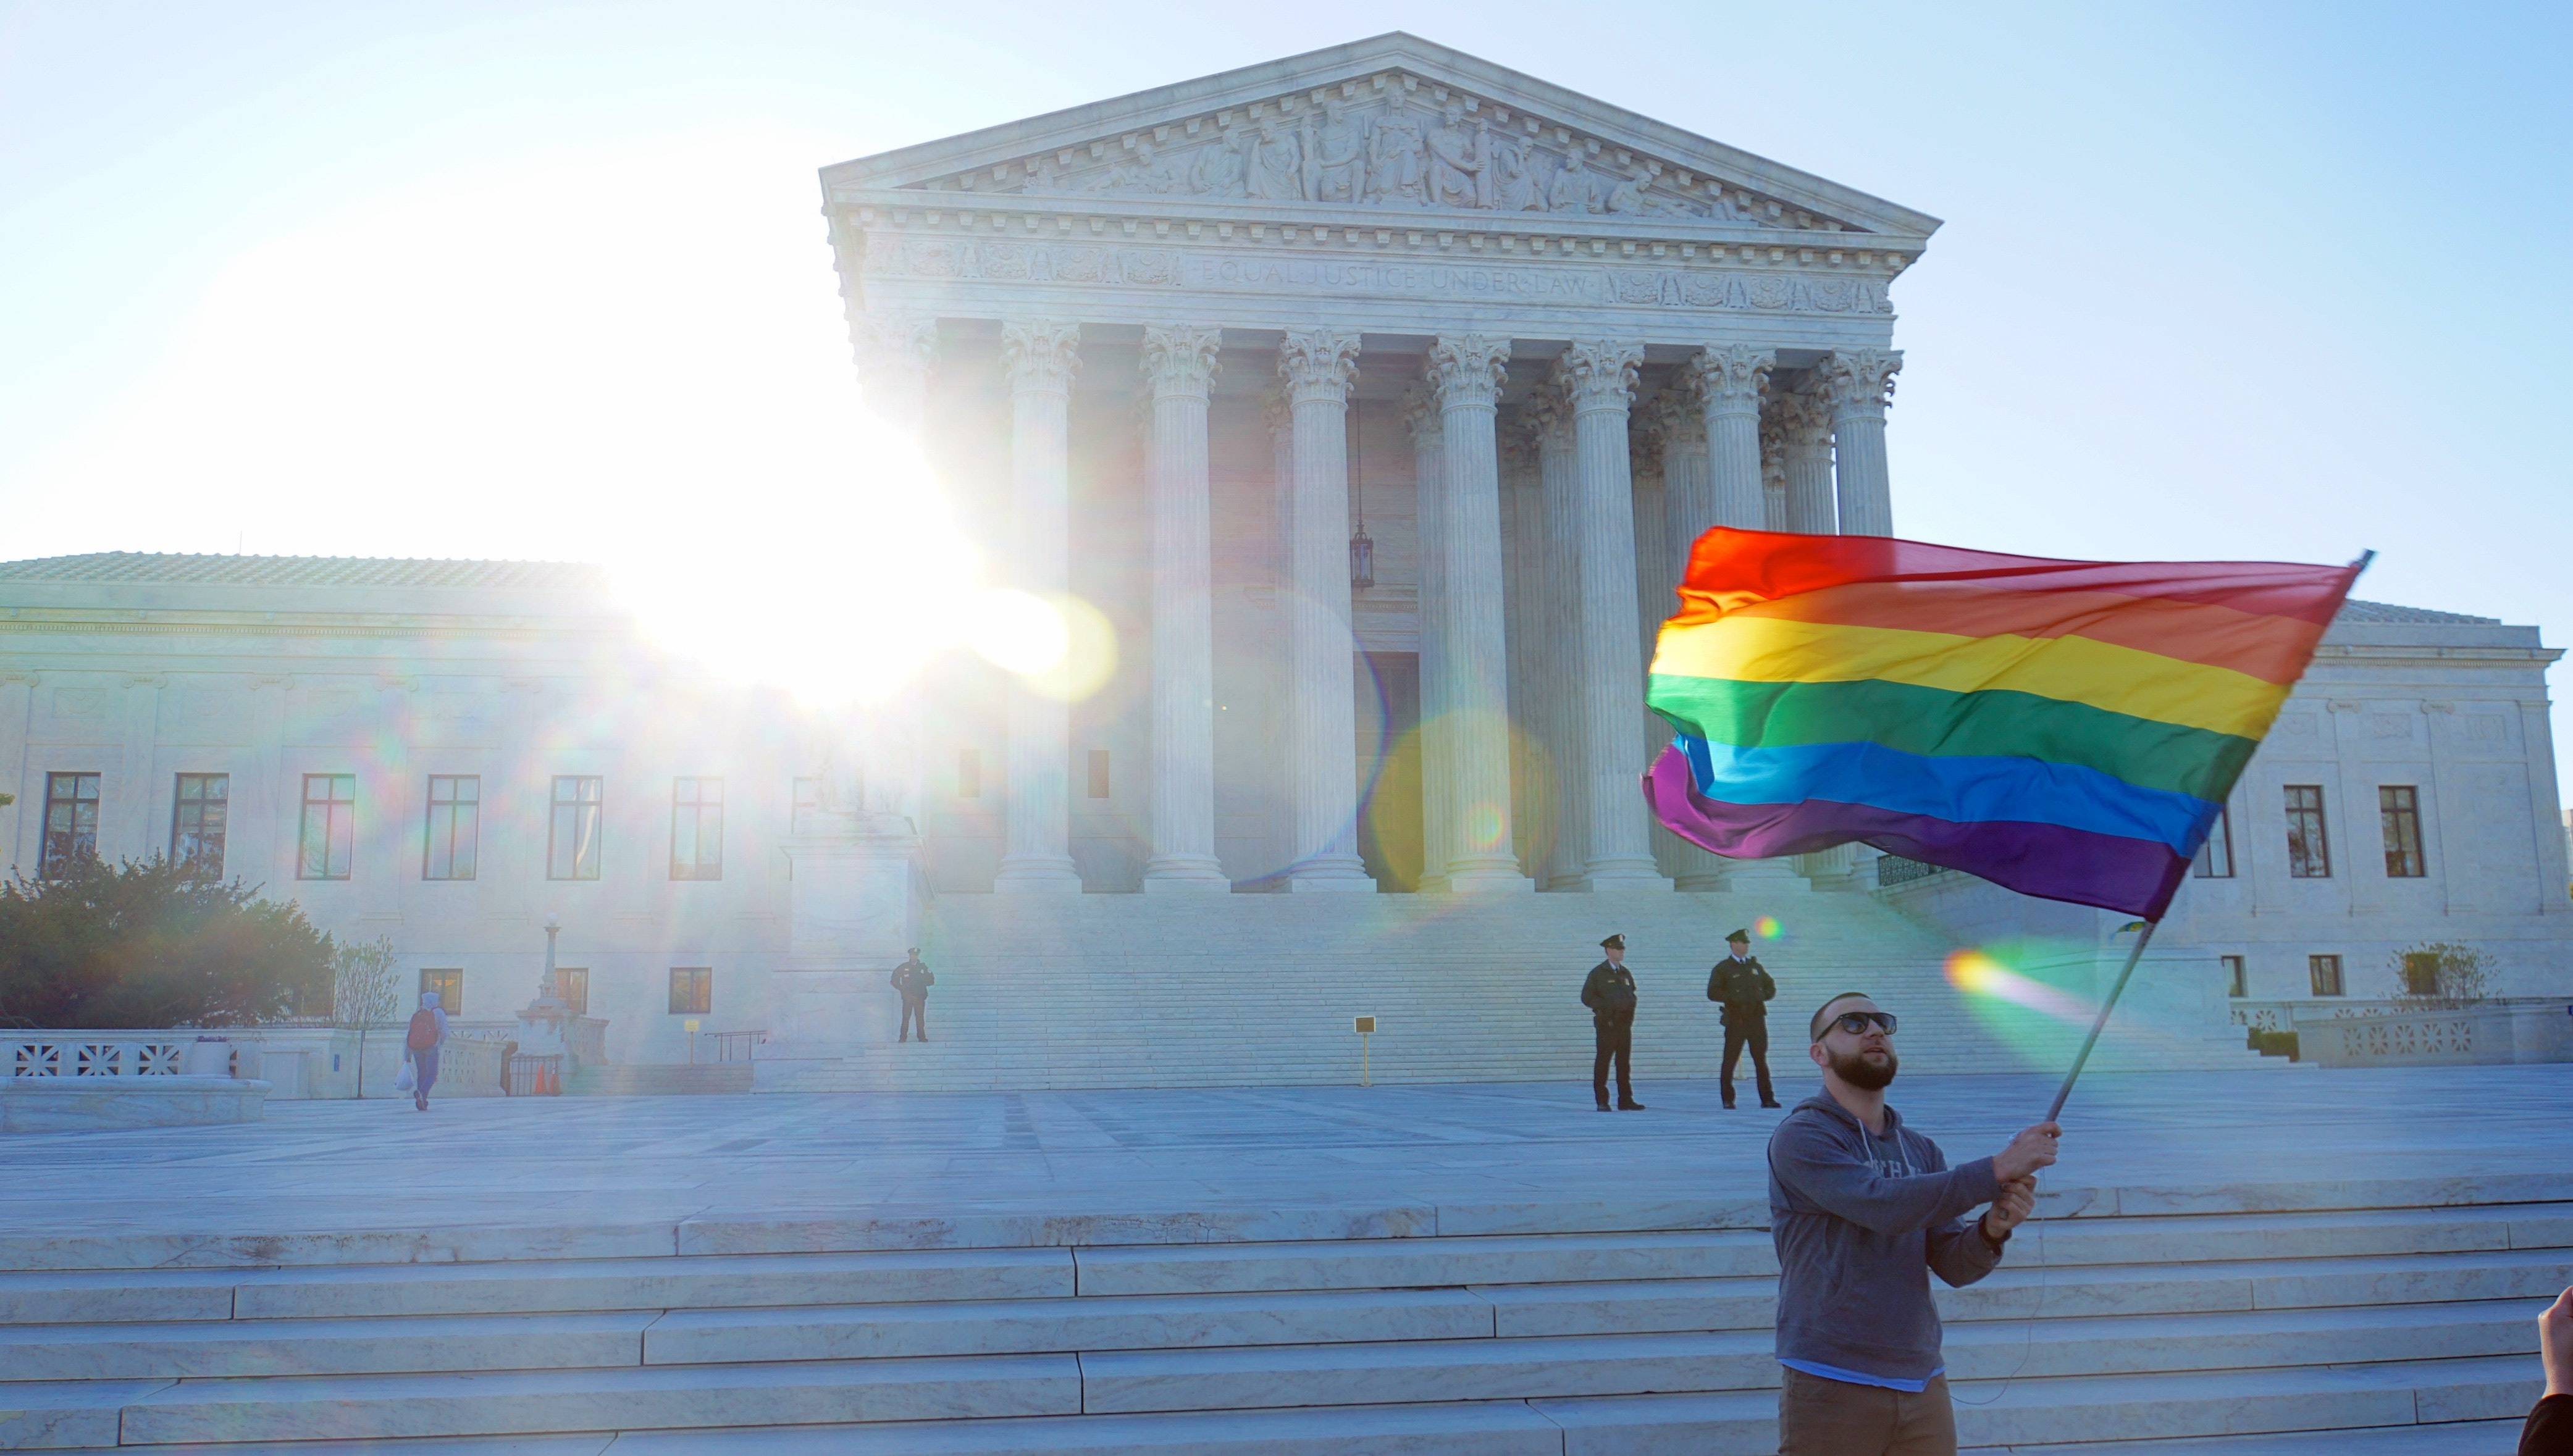 Date of supreme court decision on gay marriage